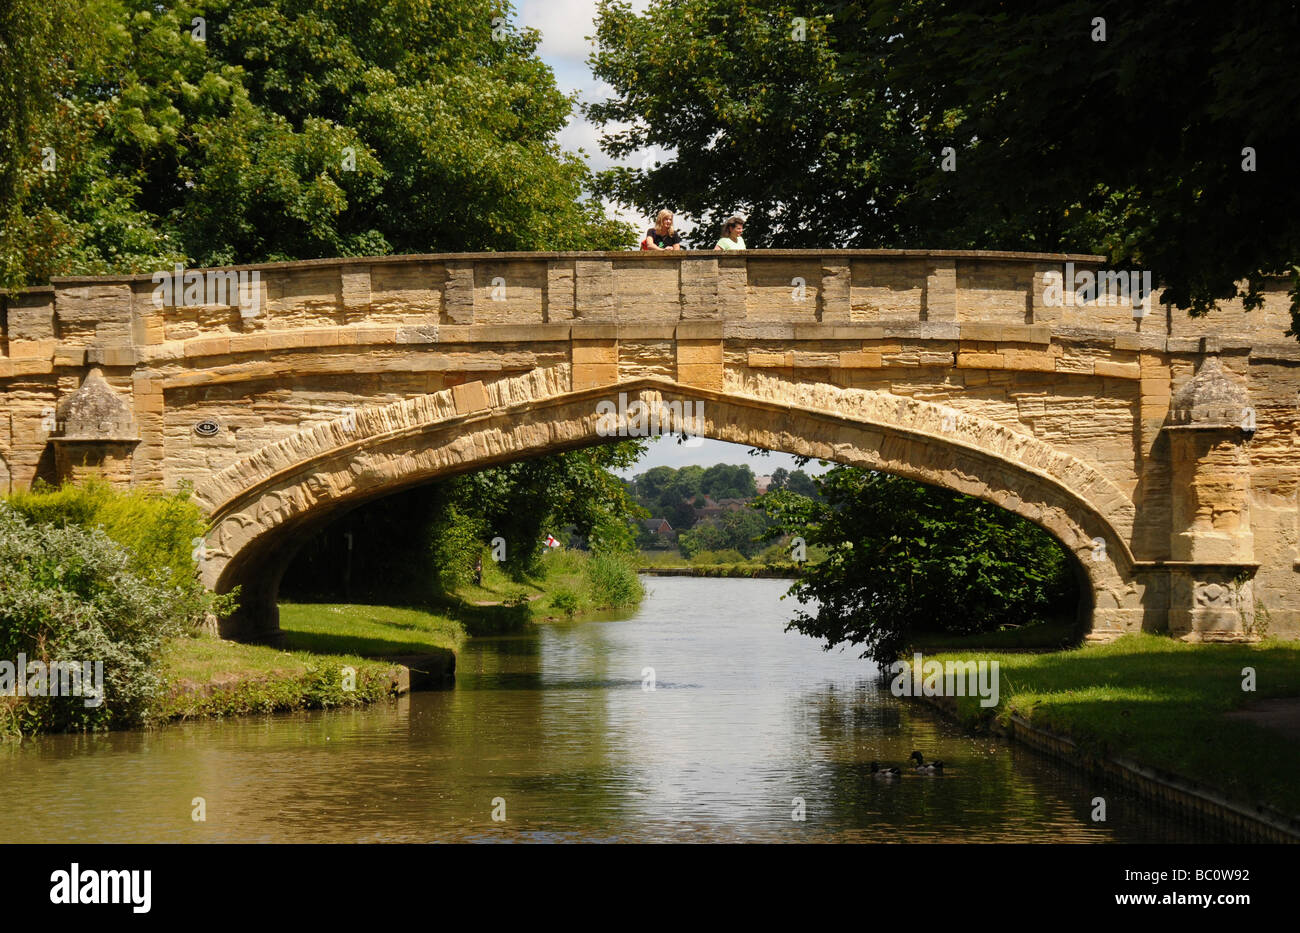 A stone bridge over The Grand Union canal in the village of Cosgrove, Northamptonshire. - Stock Image